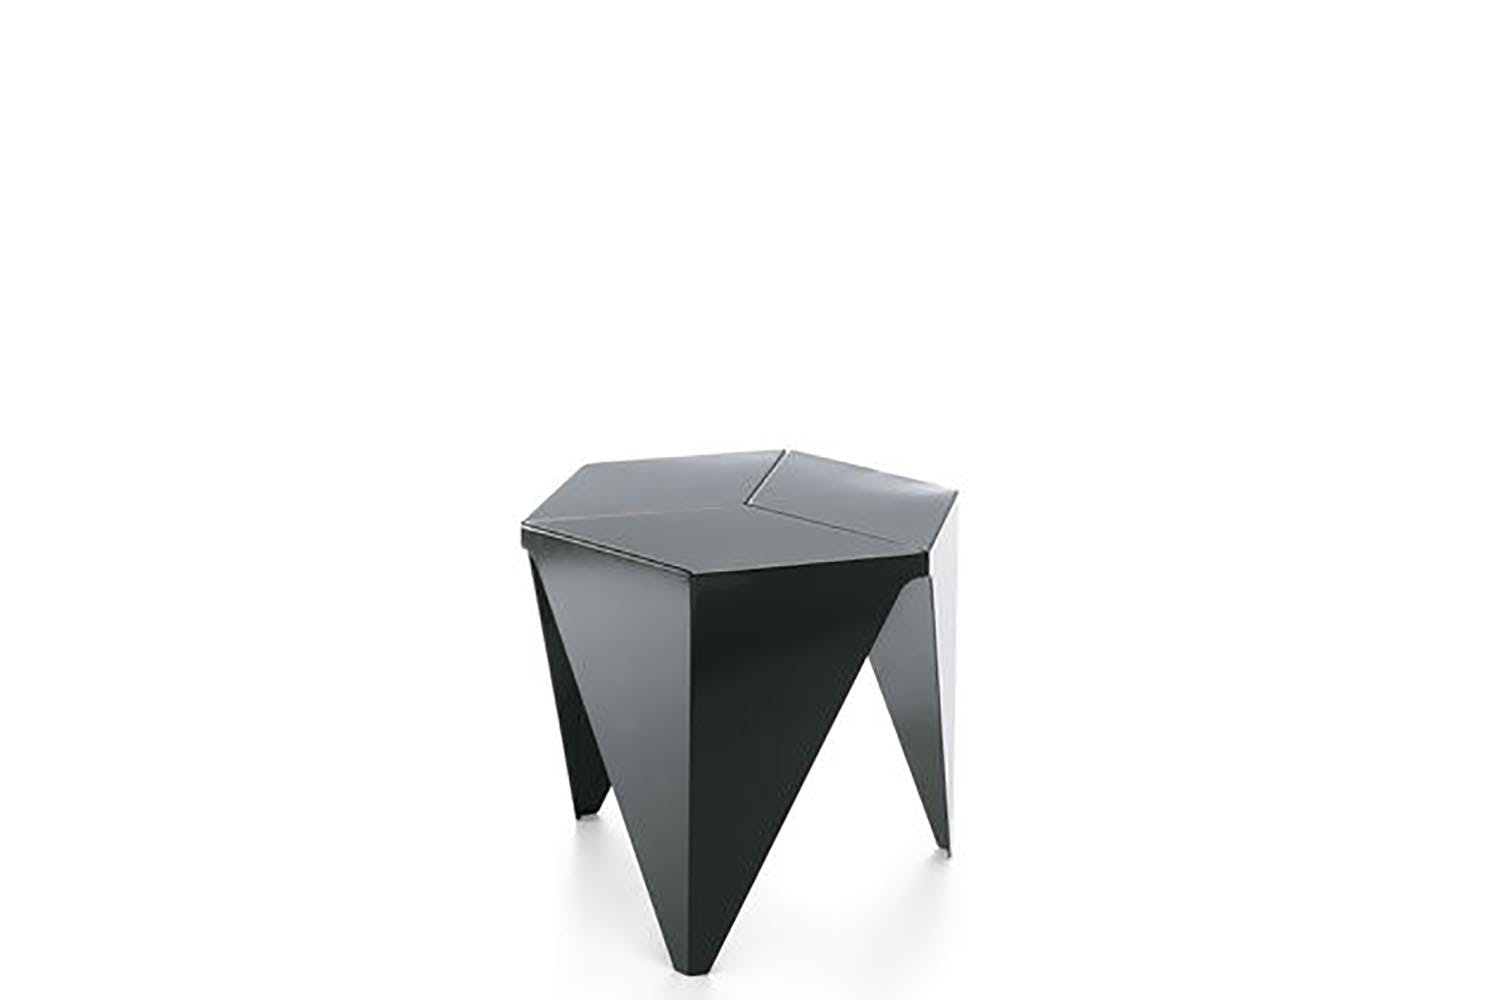 prismatic table by isamu noguchi for vitra space furniture. Black Bedroom Furniture Sets. Home Design Ideas